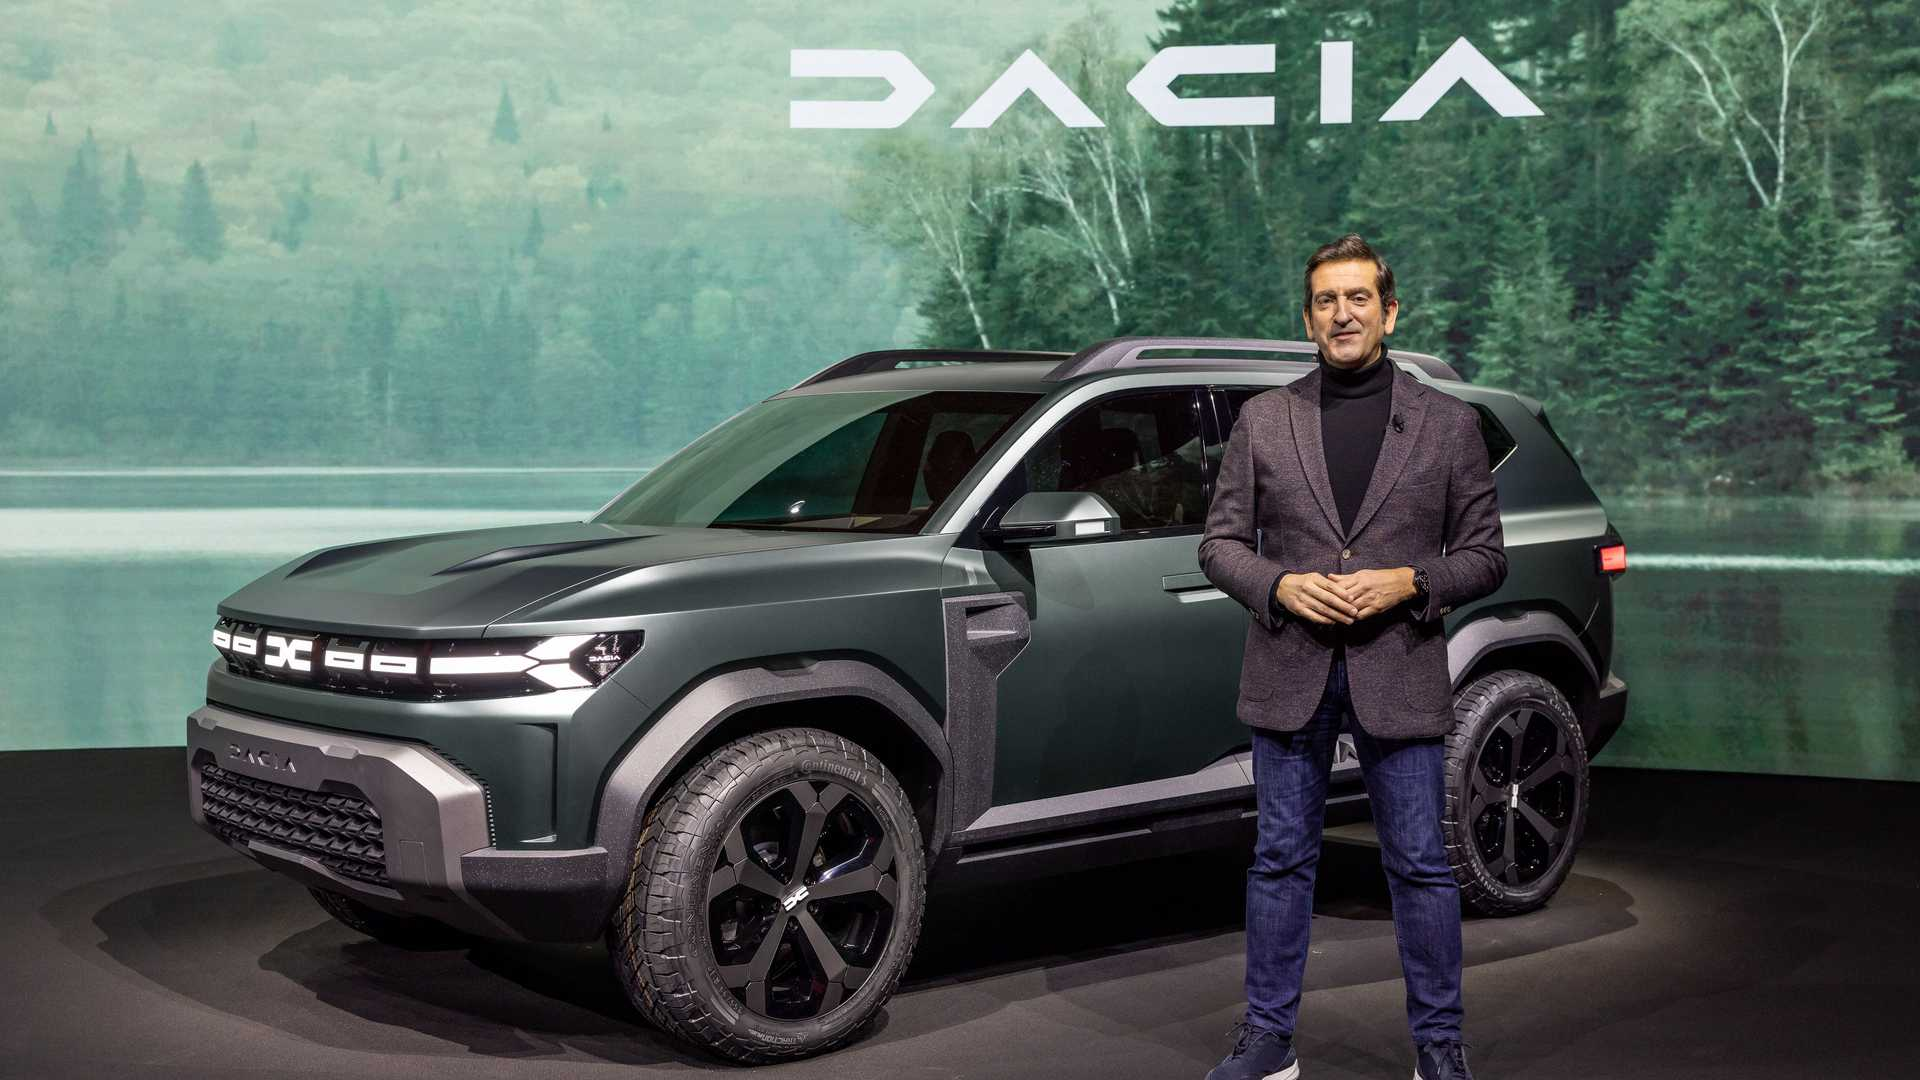 The Romanian car marque has serious lineup expansion plans in mind, including three all-new models slated to arrive to the showrooms in a few years' time. The Bigster Concept depicted here is one of them.